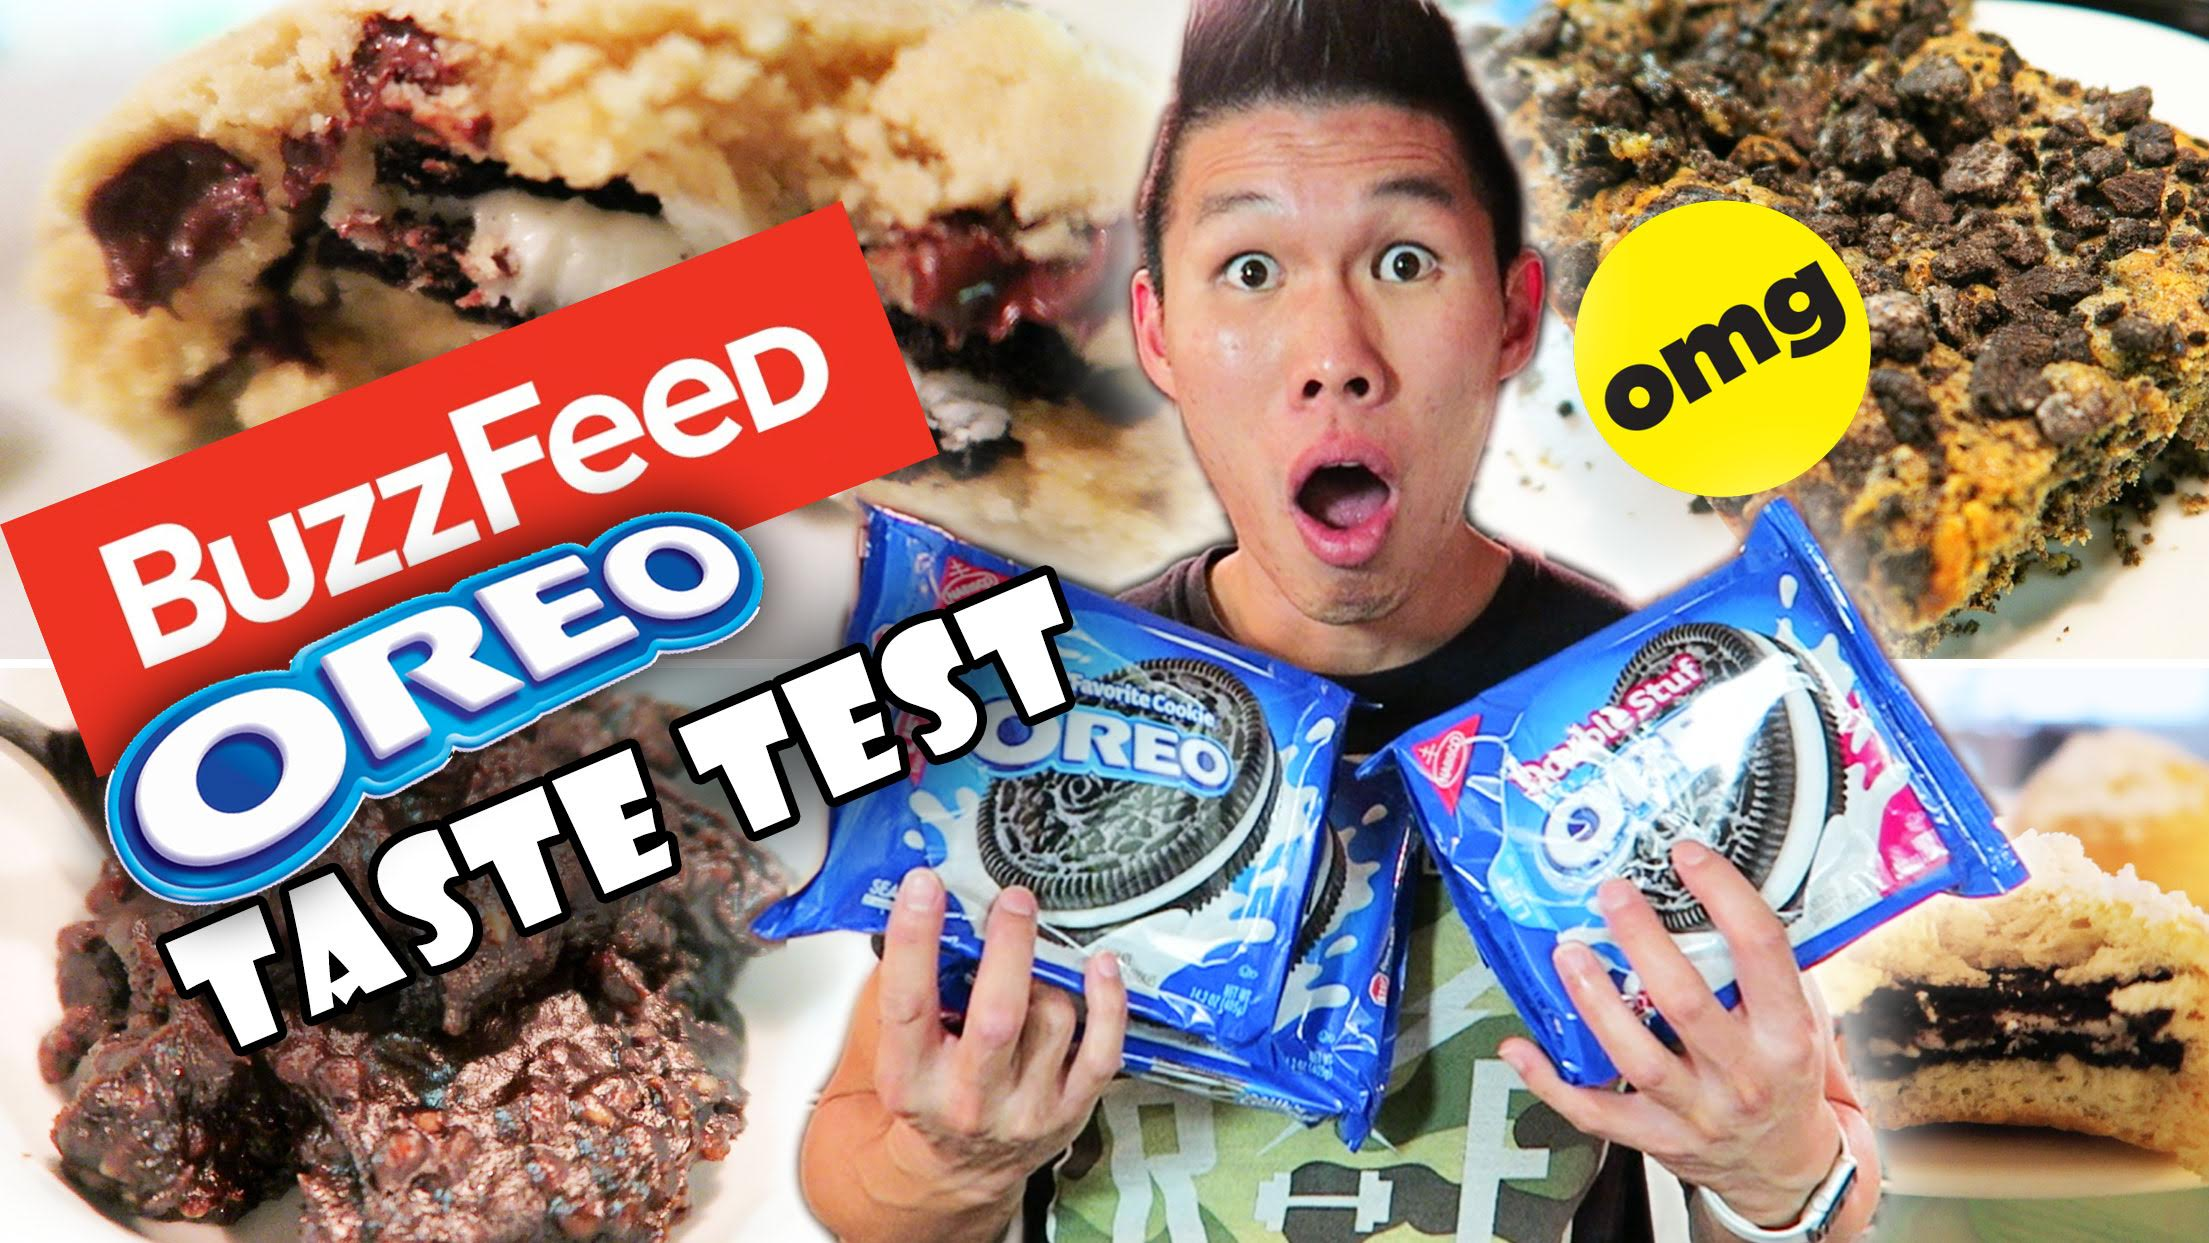 Oreo Buzzfeed Food Recipes Tested